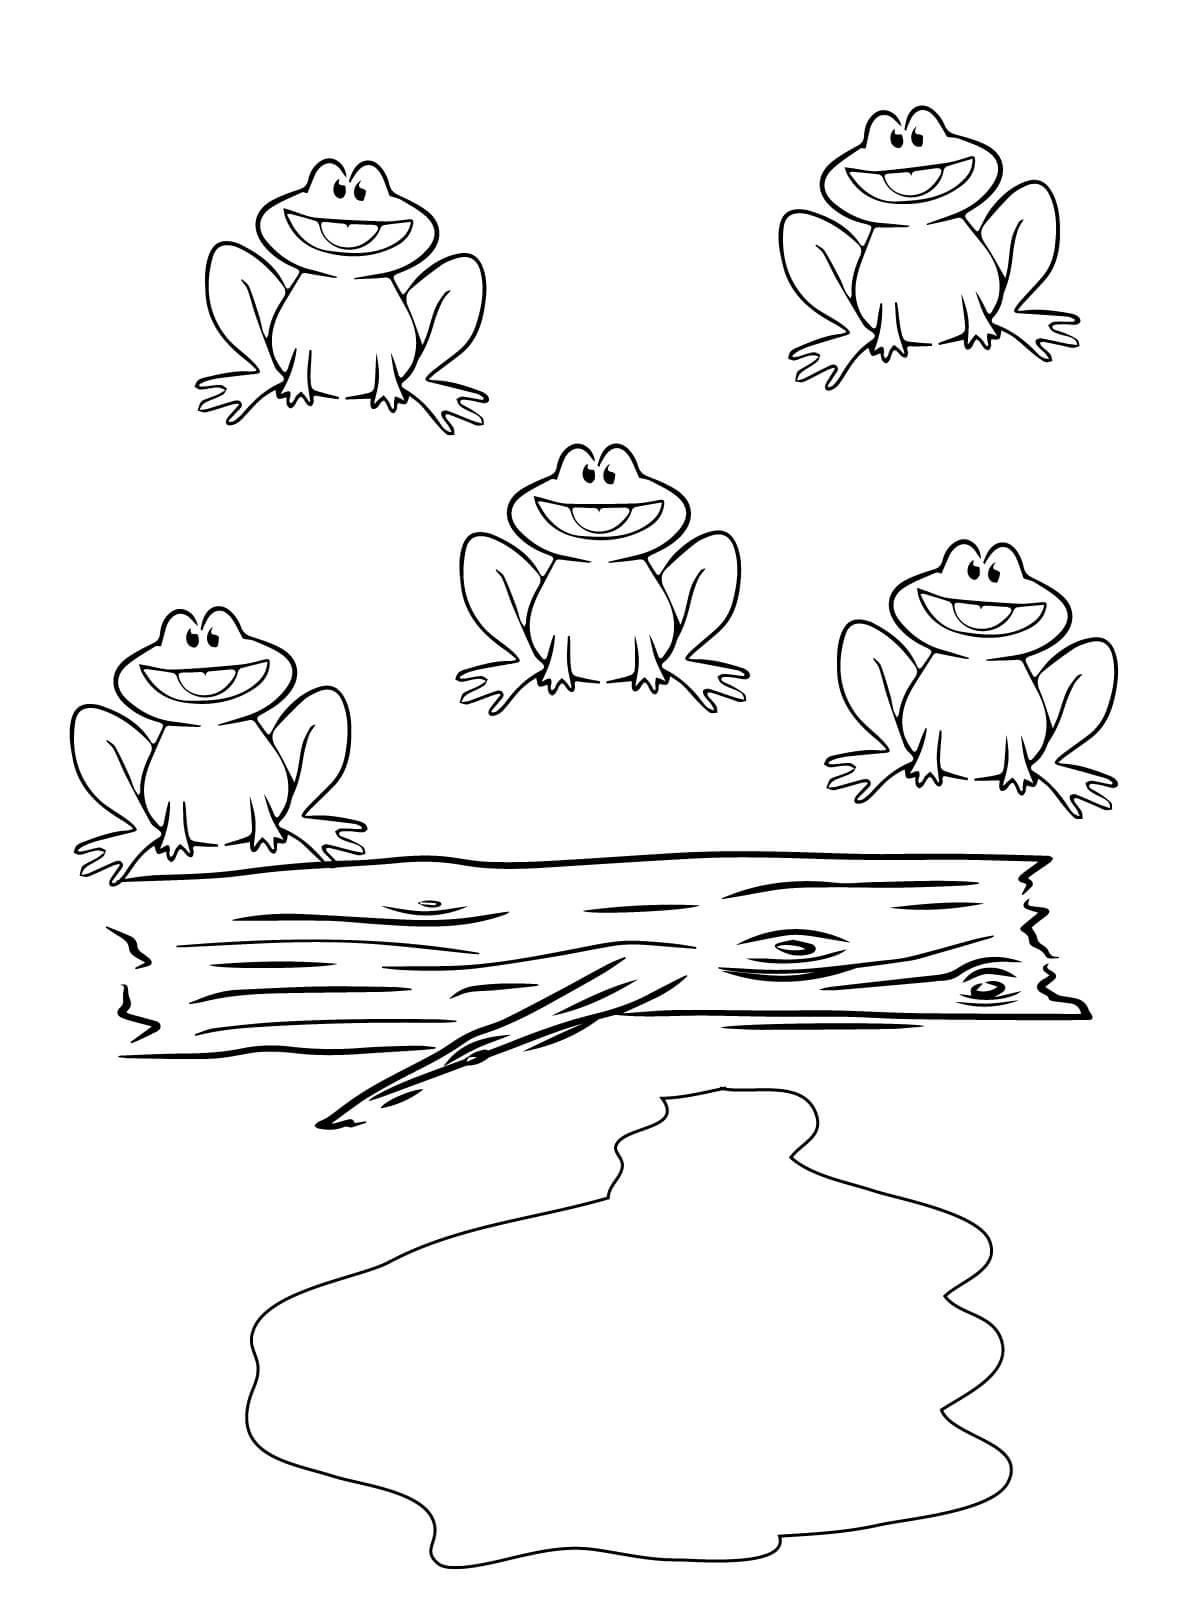 Five Little Speckled Frogs Coloring Picture For Kids Frog